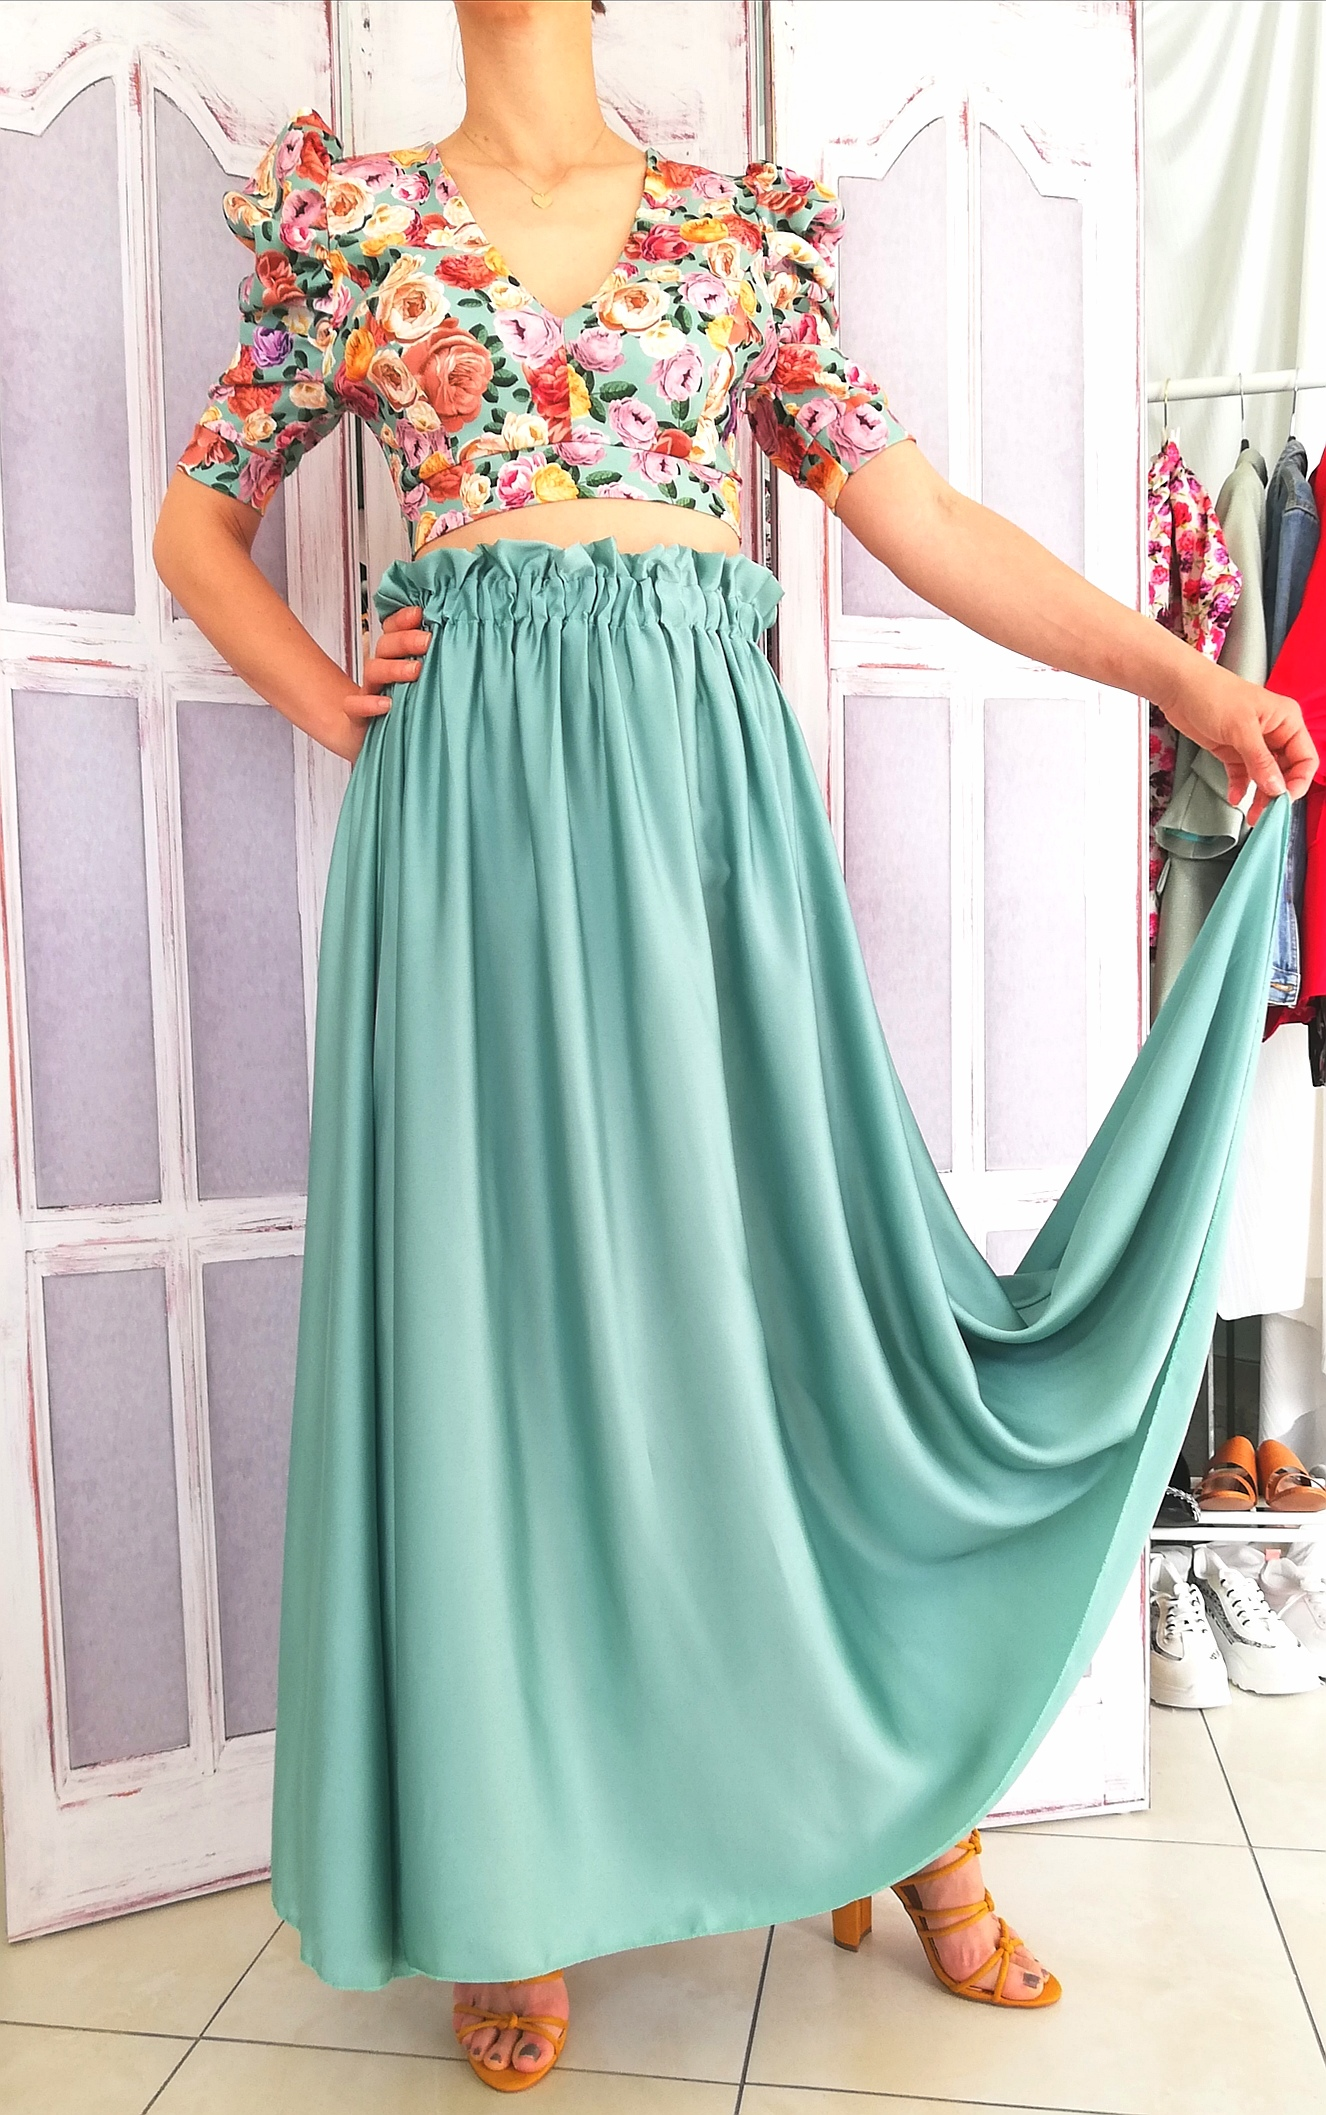 Mermaid Green Skirt